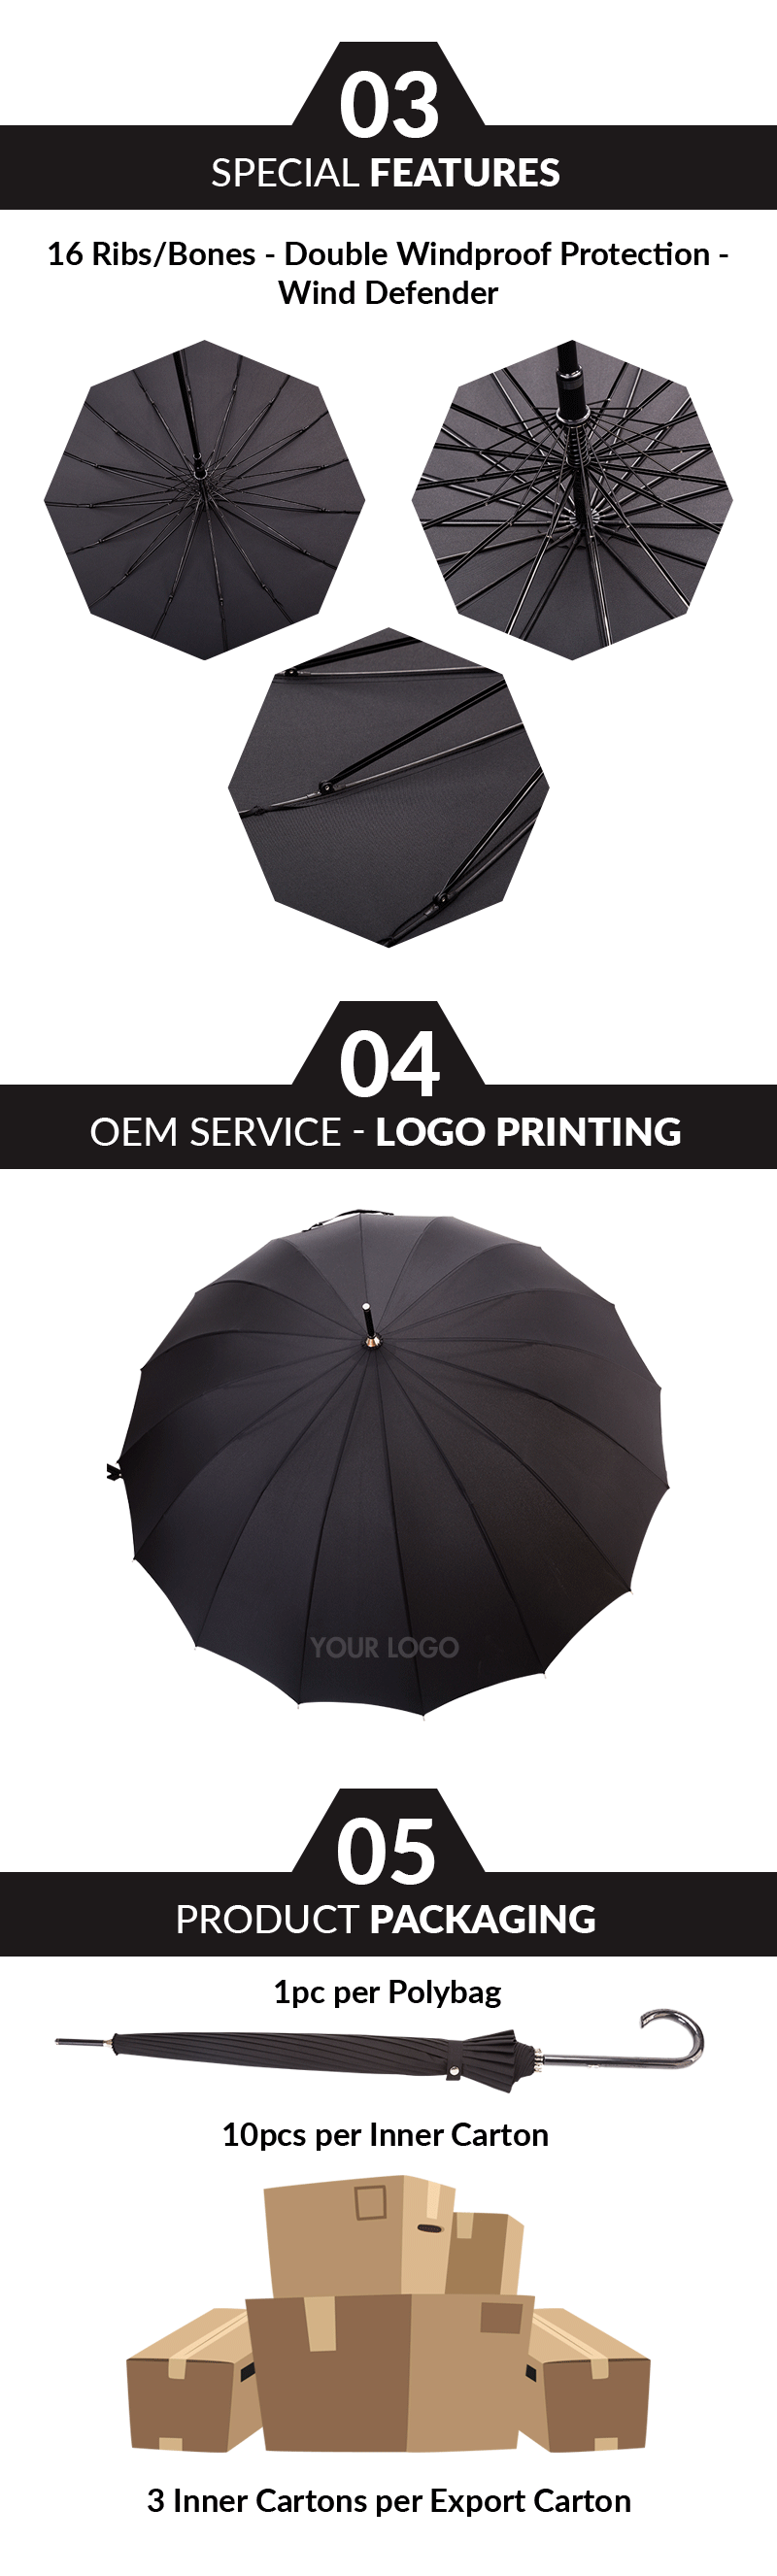 men's black automatic umbrella